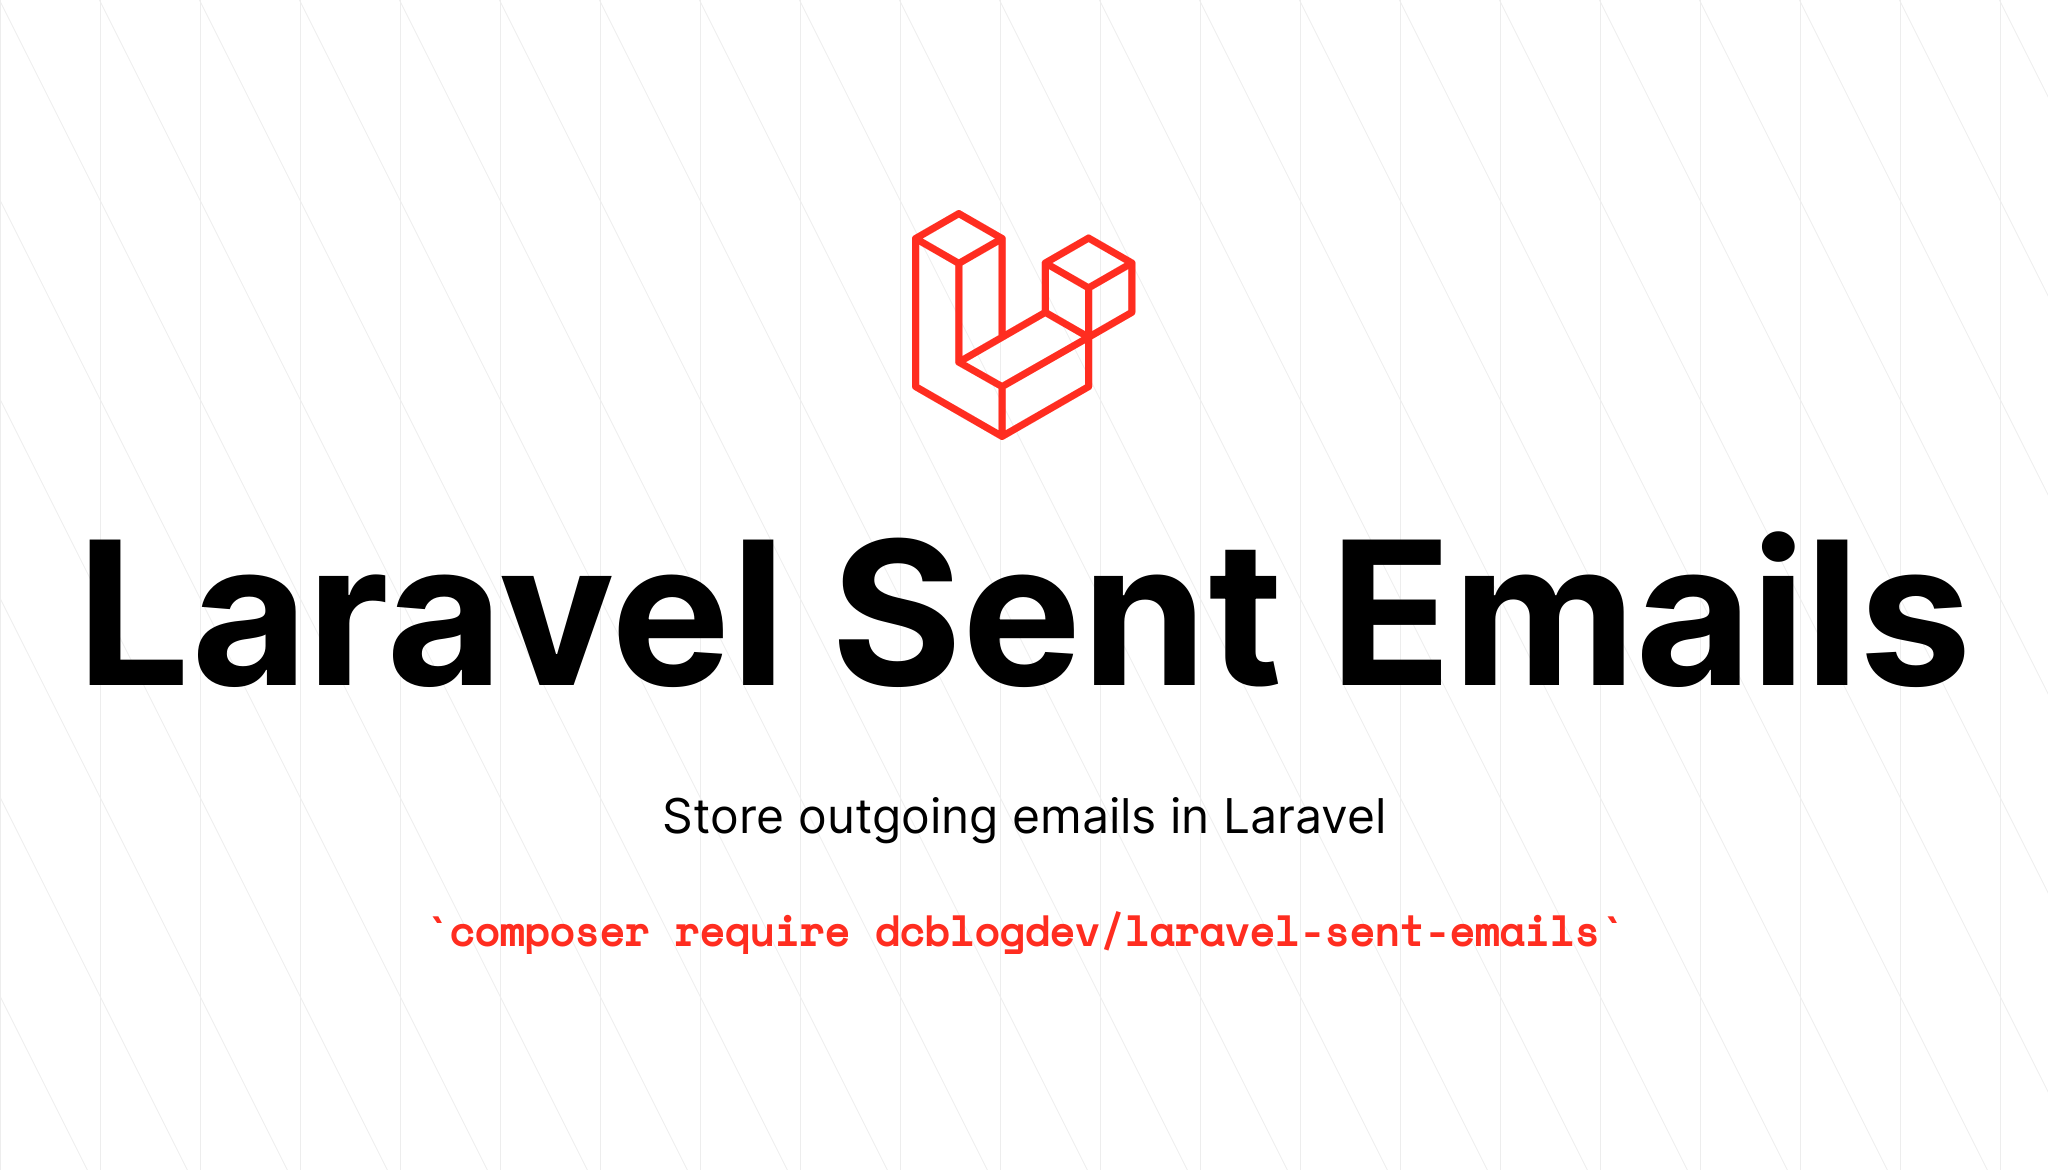 Laravel Sent Emails